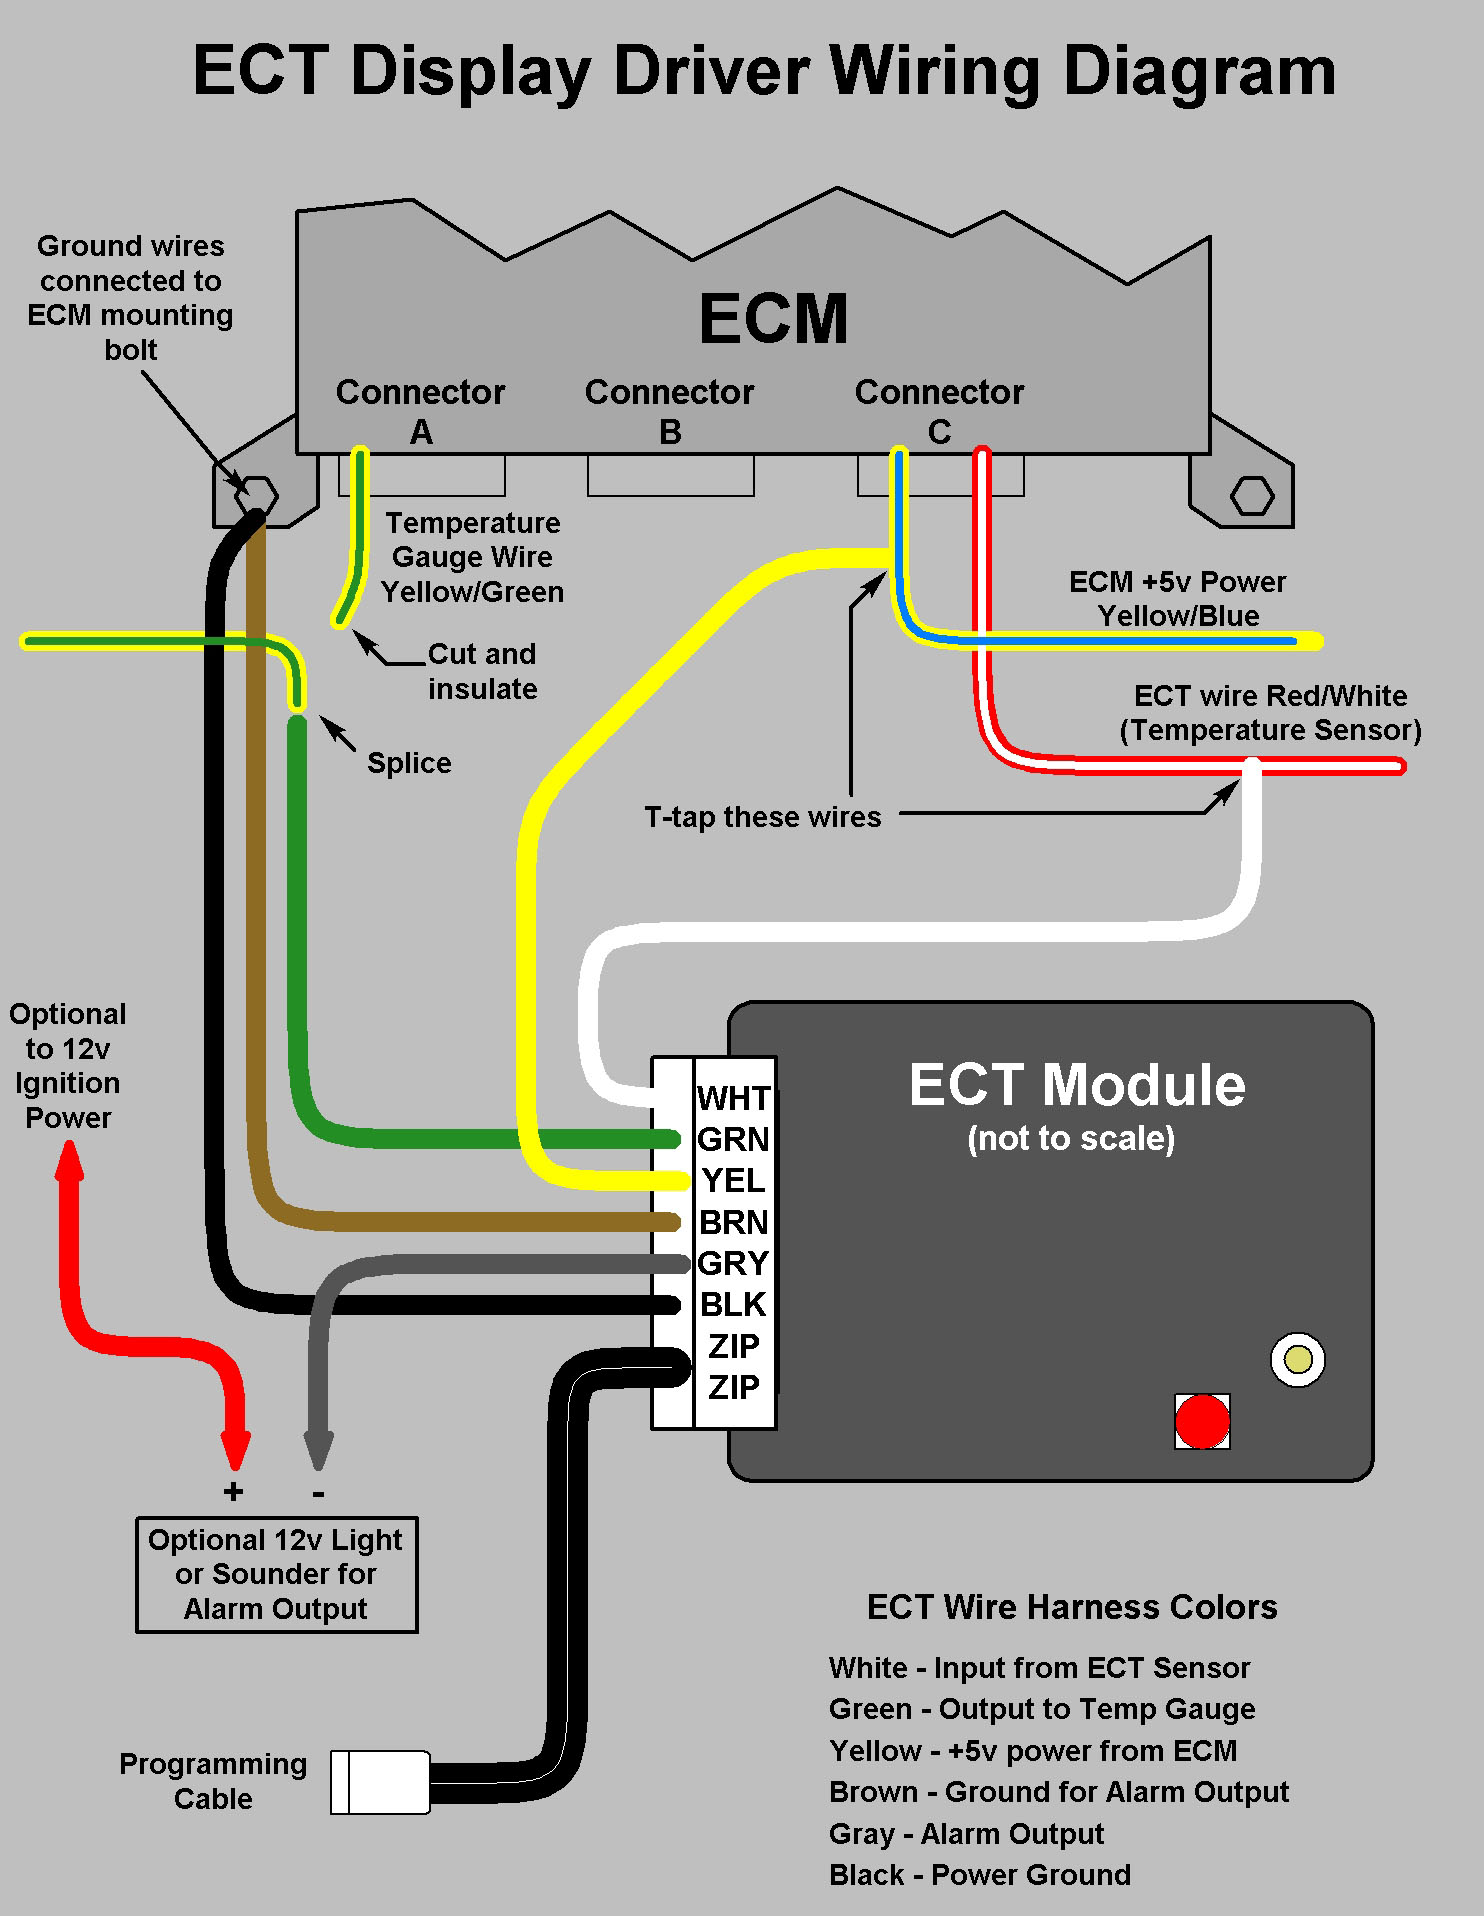 ECT wiring diagram ems wiring diagram medical diagram \u2022 free wiring diagrams life ems 8860 wiring diagram at bakdesigns.co